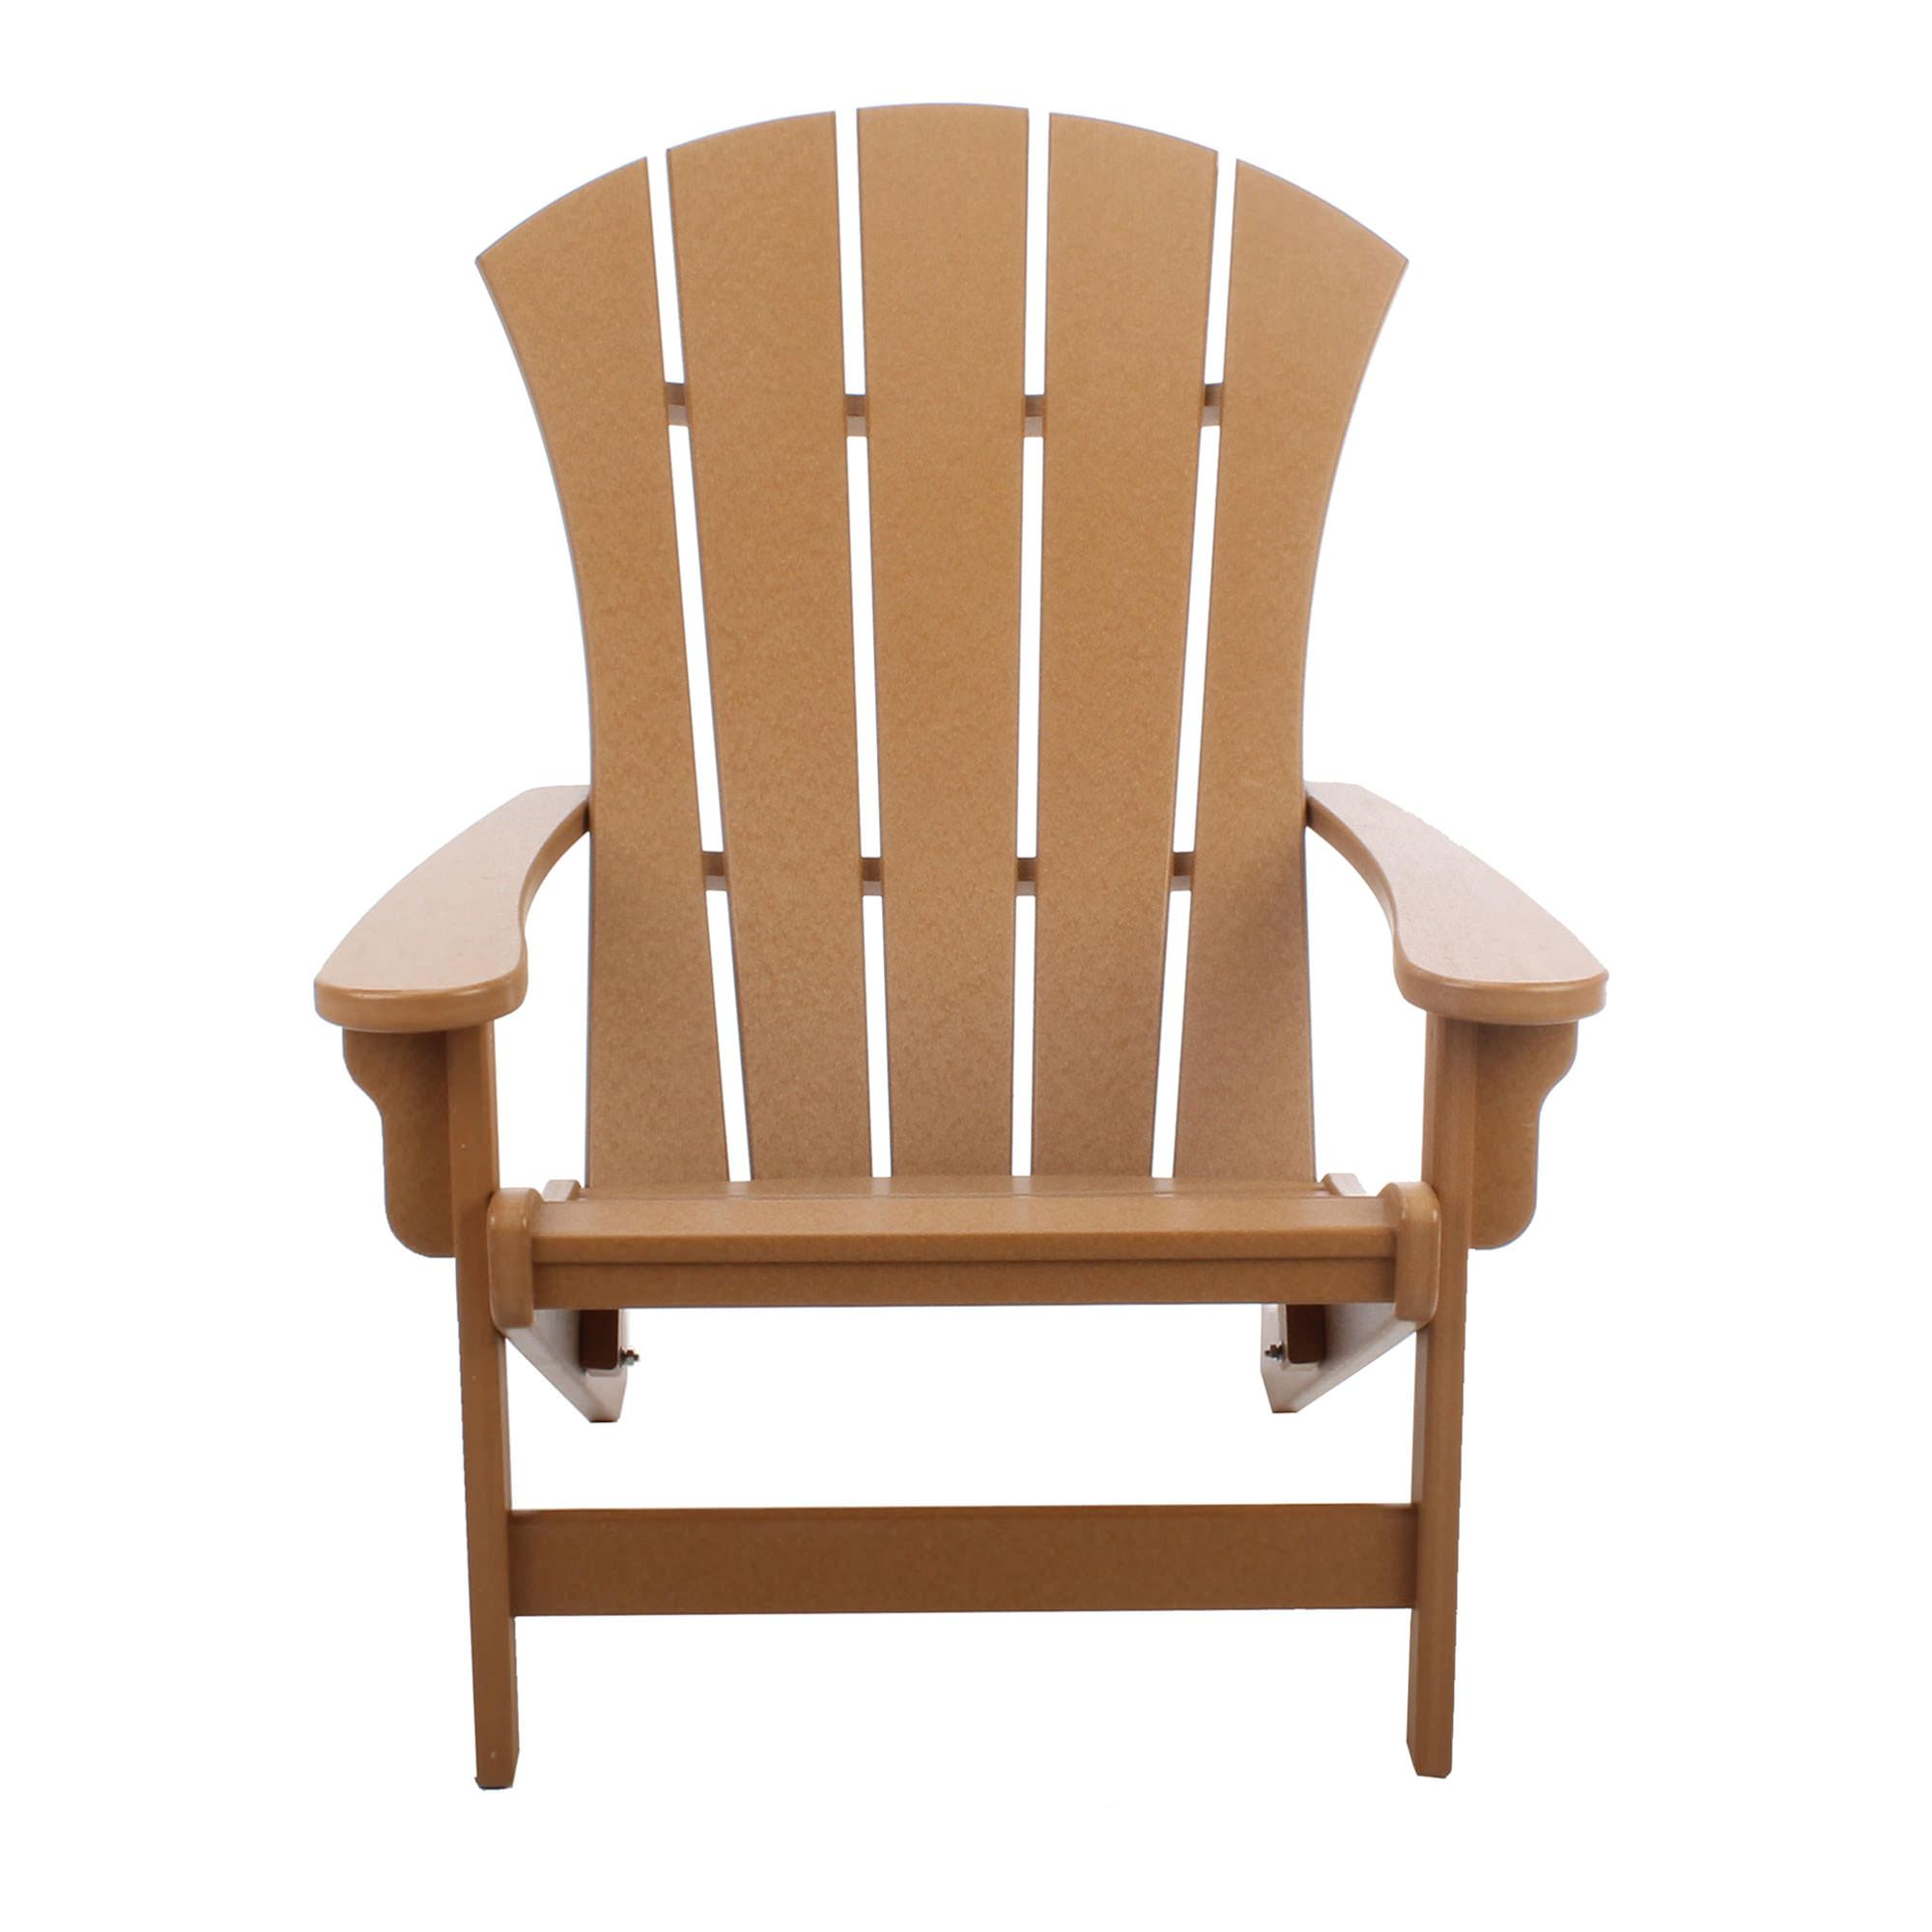 Superieur Sunrise Cedar Durawood Adirondack Chair ...